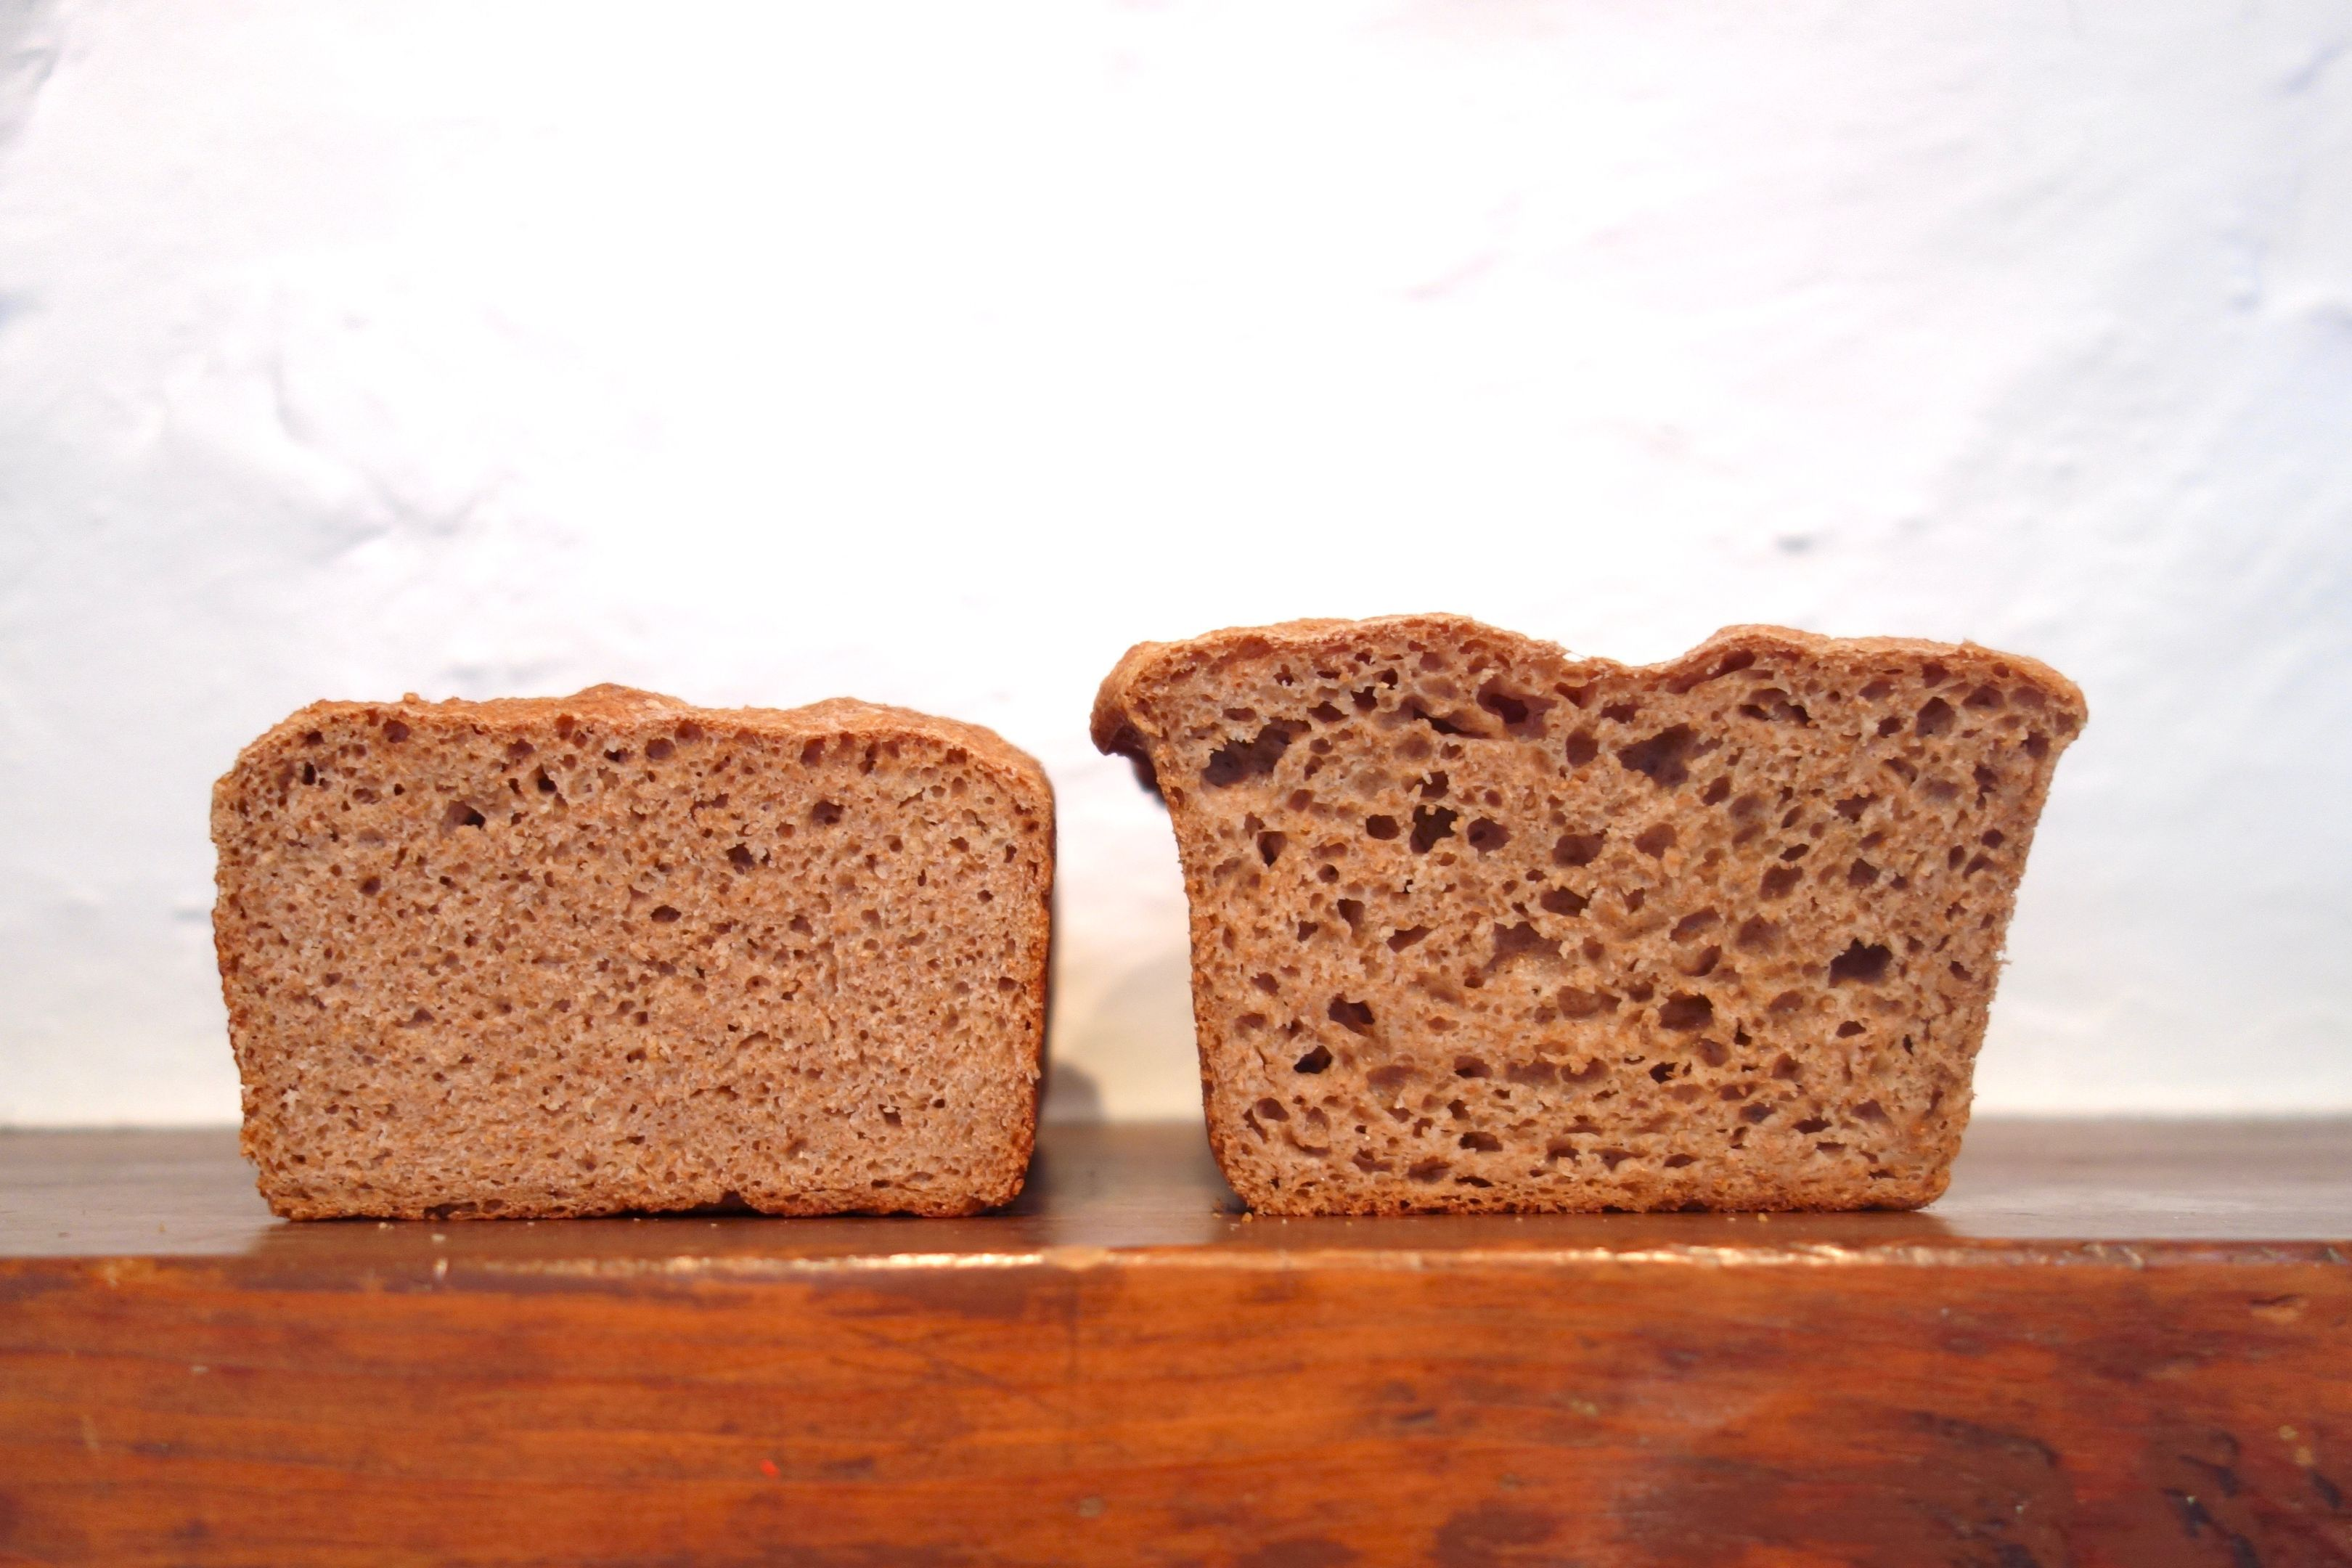 Whole-Wheat vs. White Flour: What's the Difference?